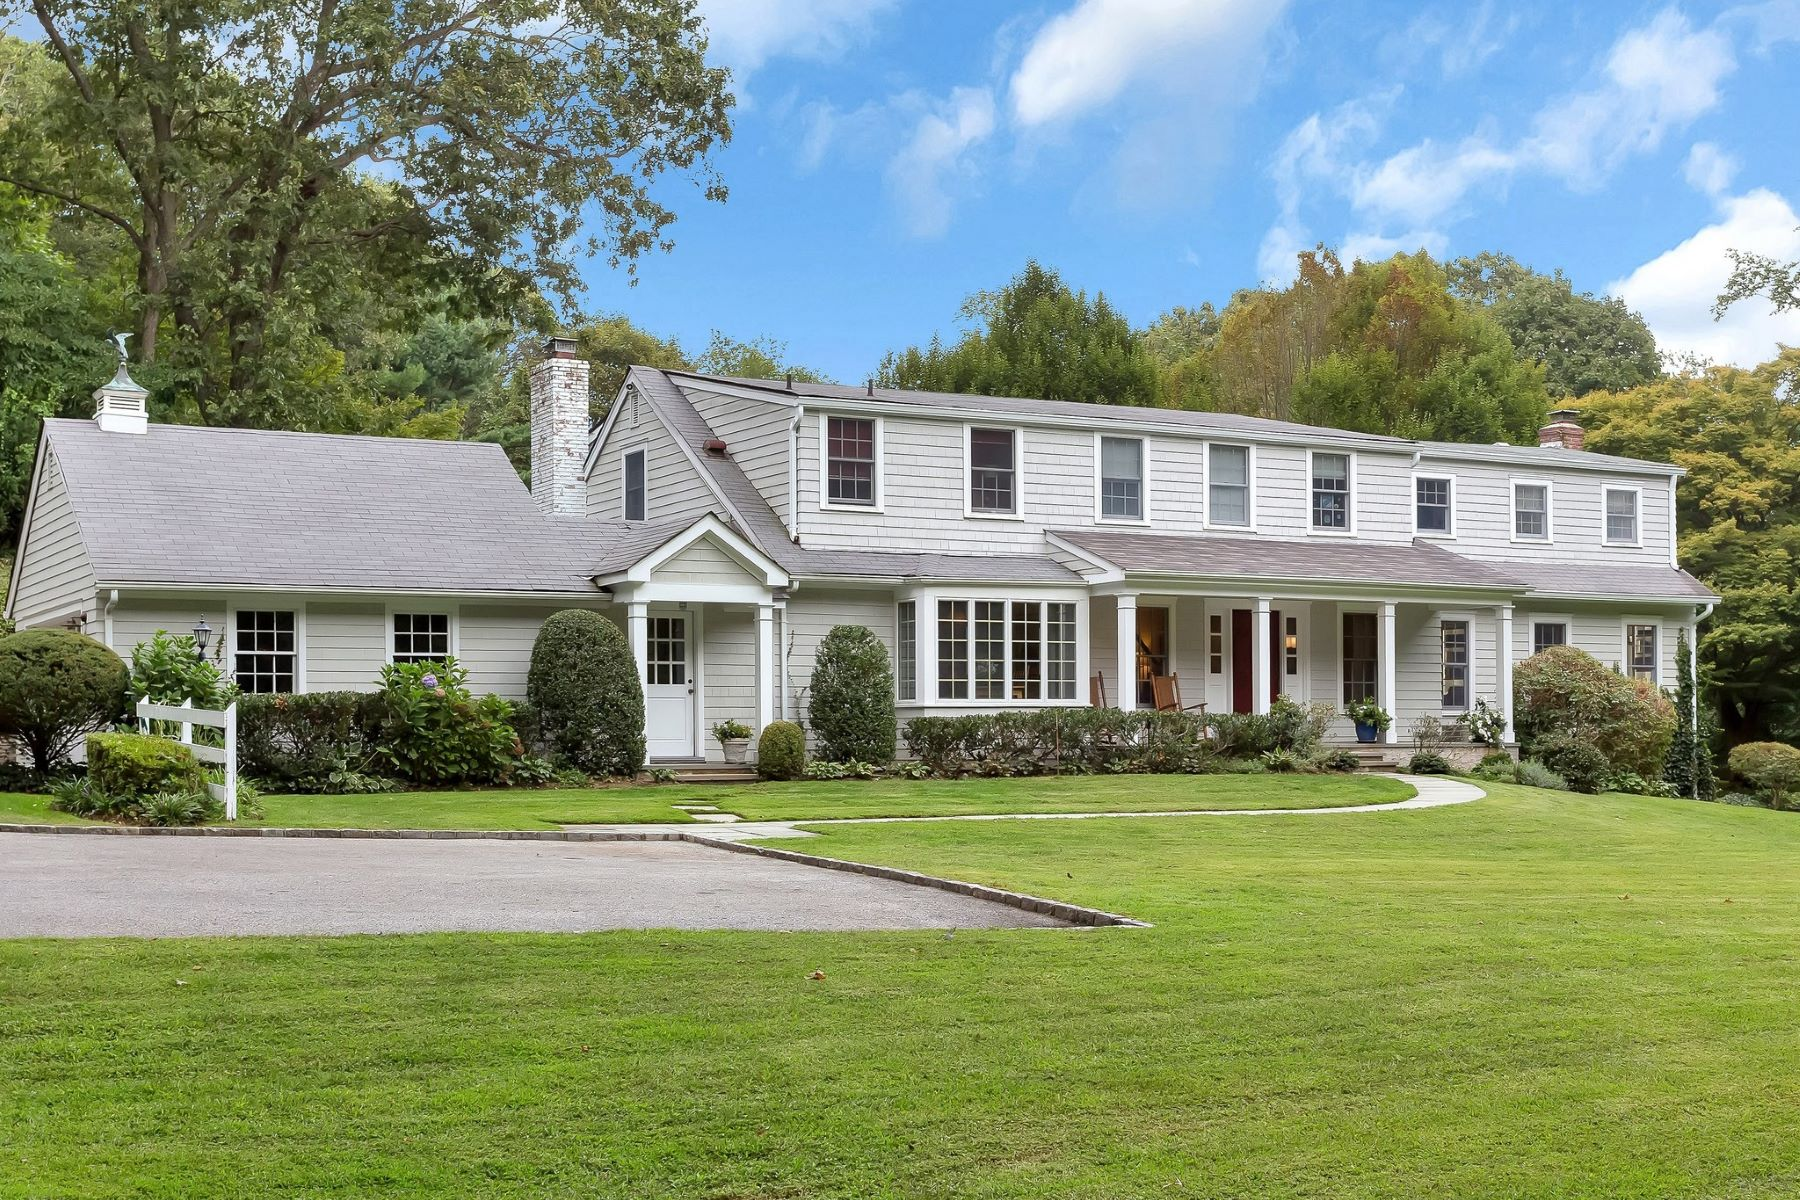 Single Family Homes for Active at Matinecock Wellington Rd Matinecock, New York 11560 United States